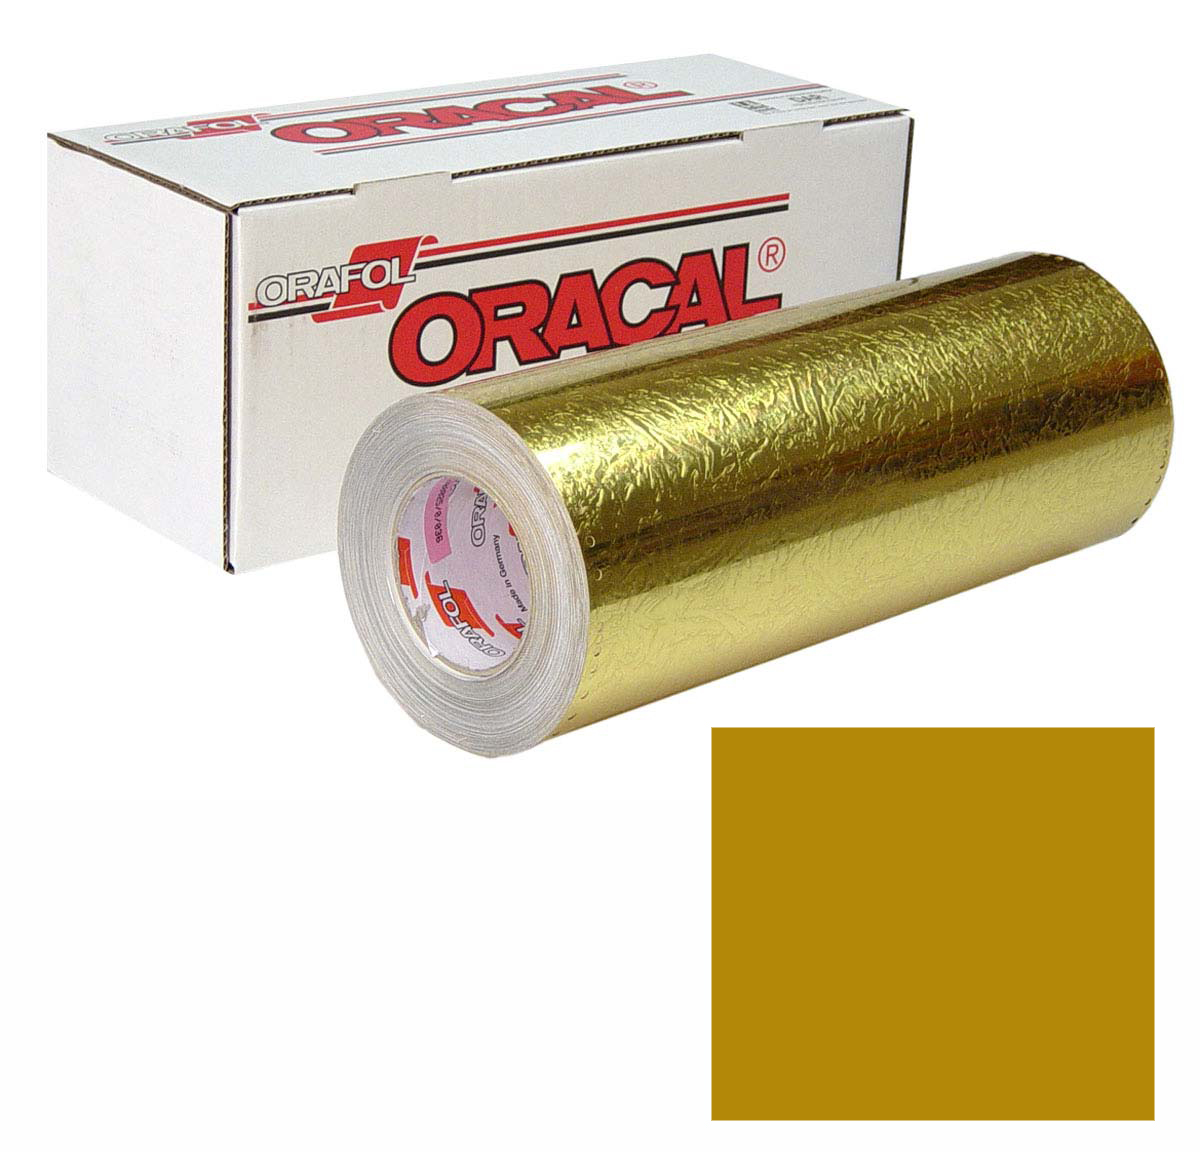 ORACAL 383 Ultraleaf 30in X 50yd 003-Gold